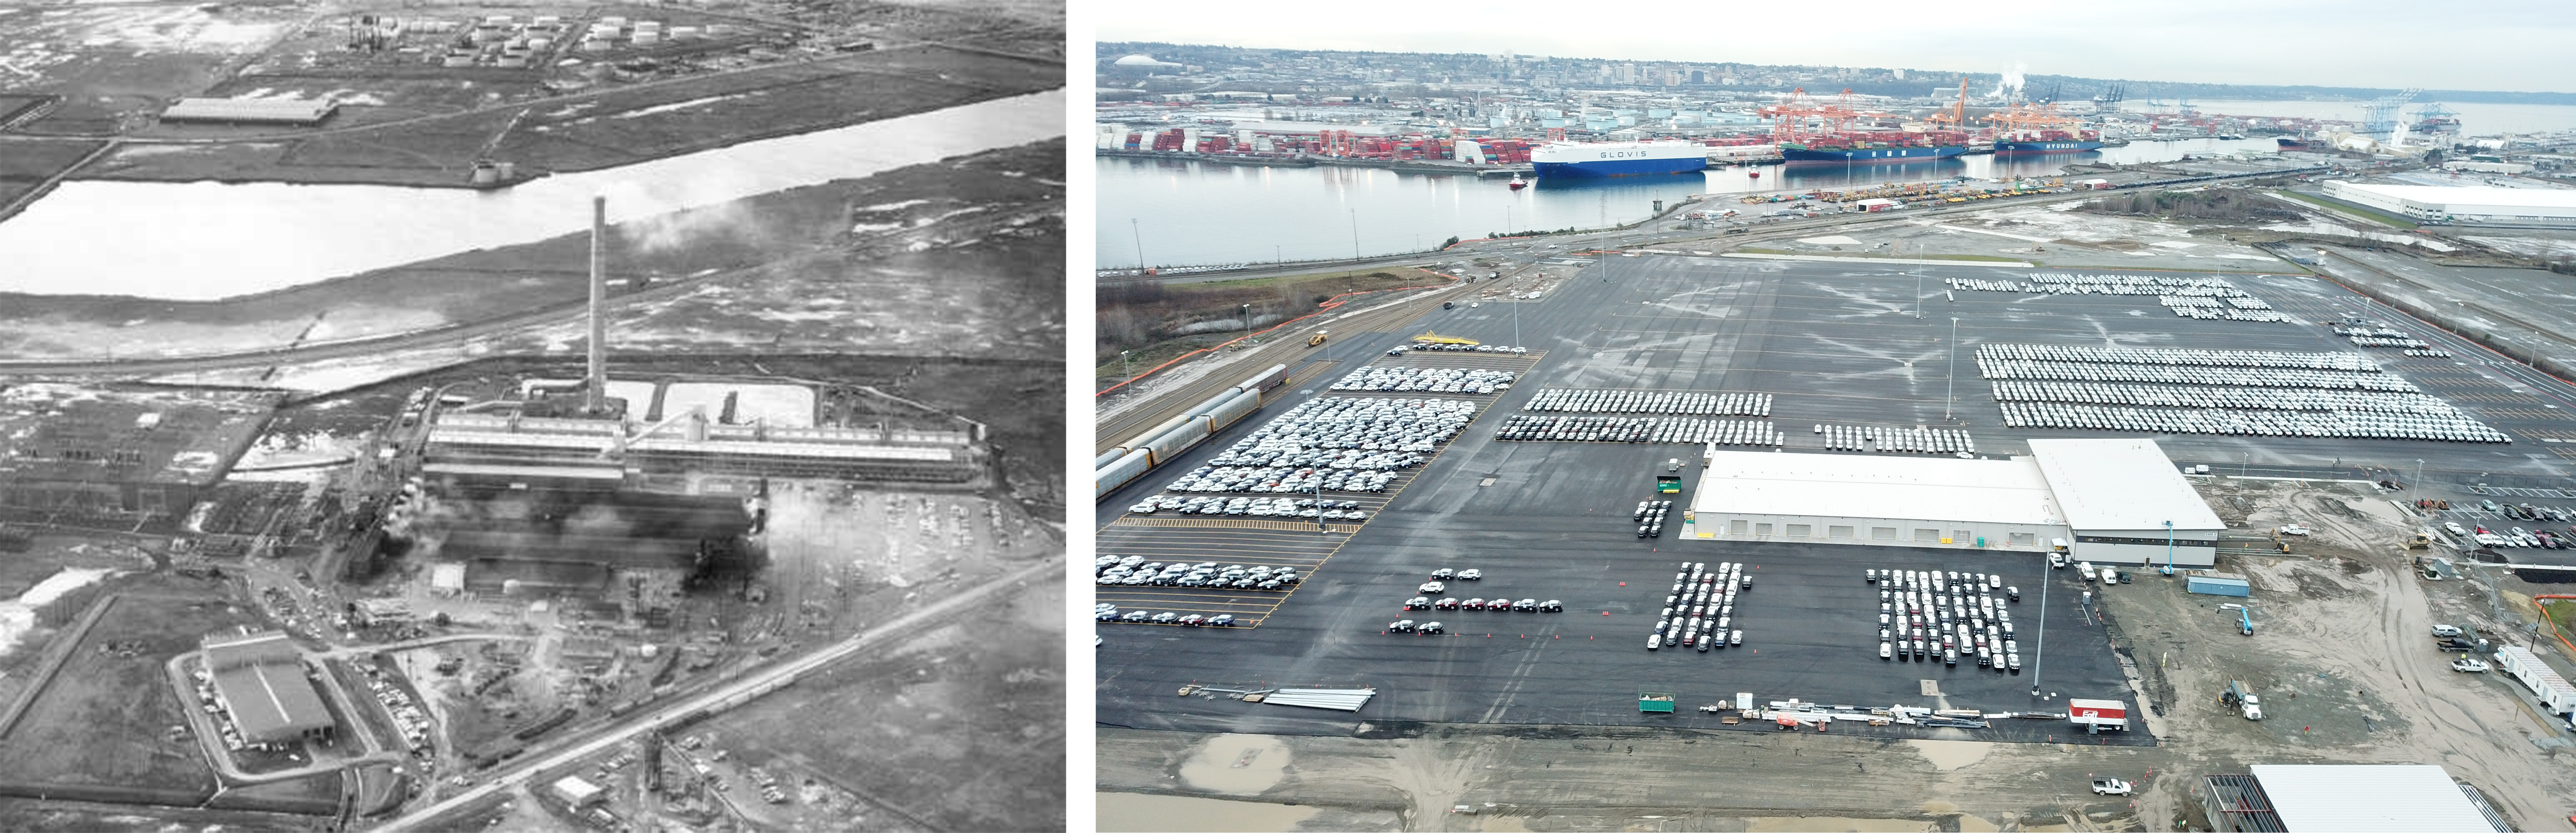 Before and after photo of a former Kaiser smelter